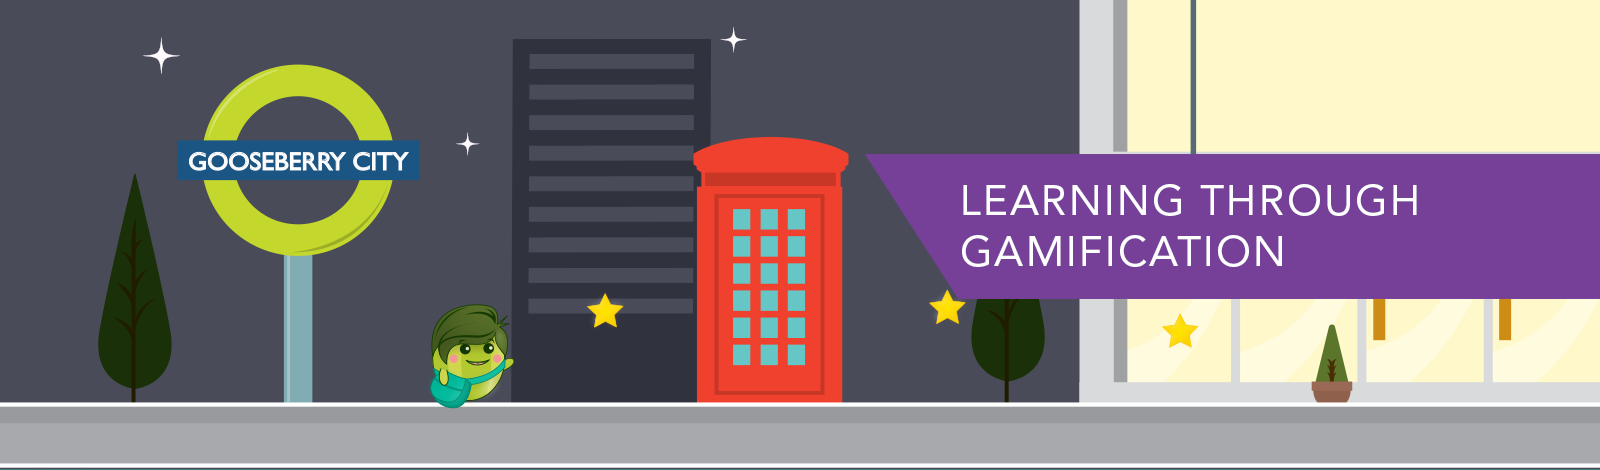 Learning Through Gamification